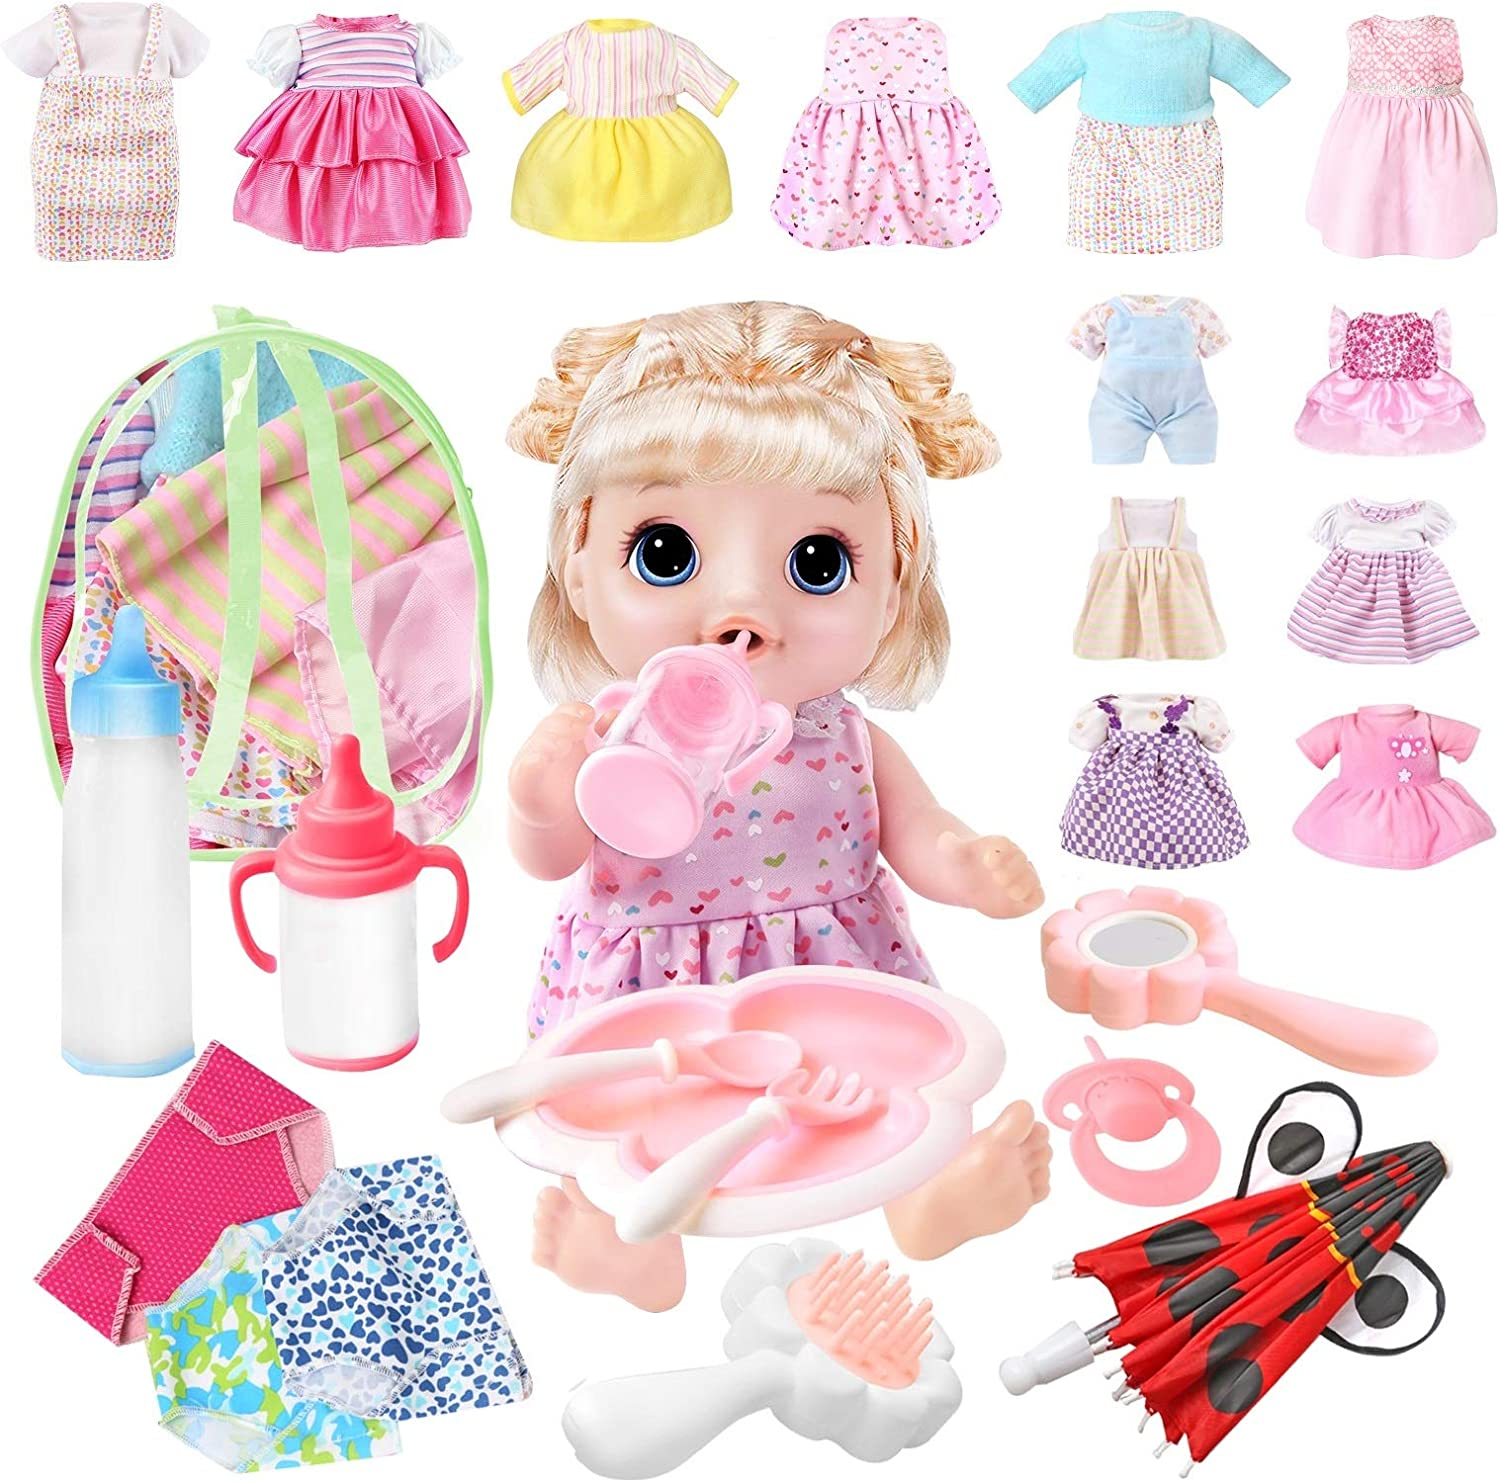 Voccim 25 Pcs Girl Doll Clothes Free shipping Alive Accessories Bitty Sales for and